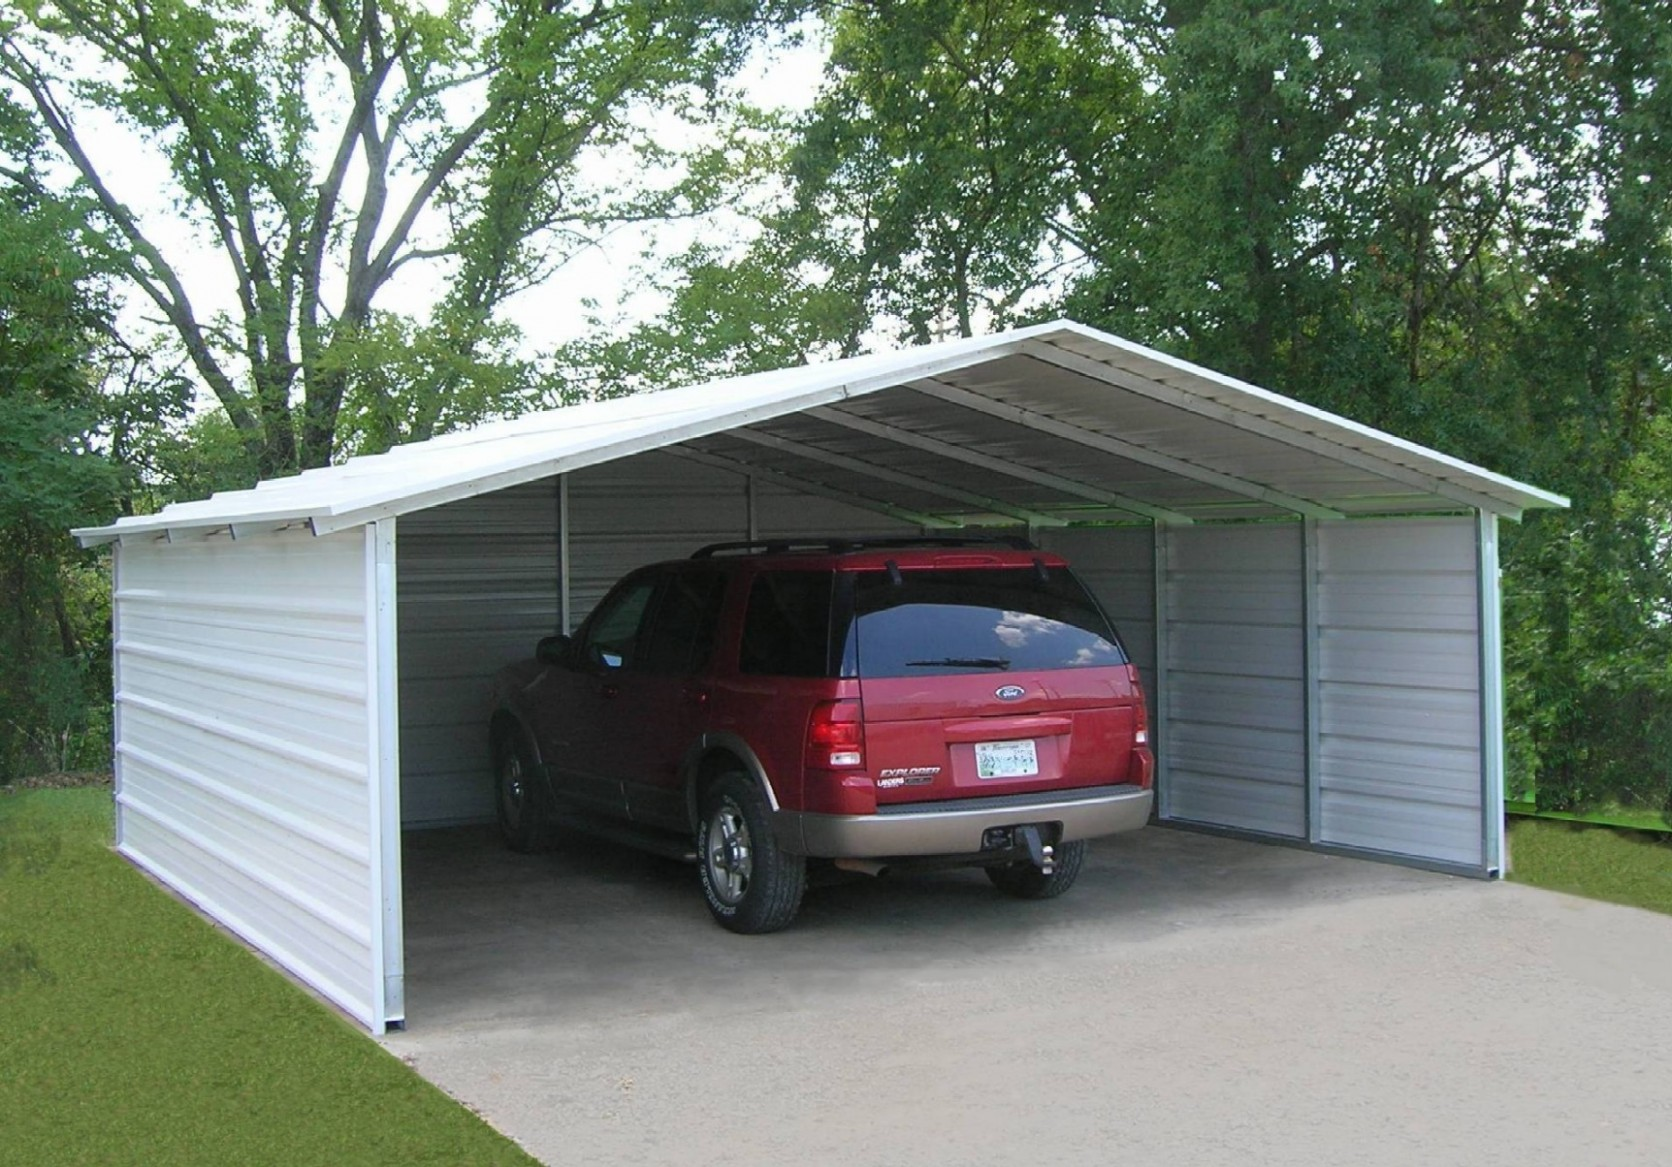 13 Important Facts That You Should Know About Portable Metal Car Garage | portable metal car garage